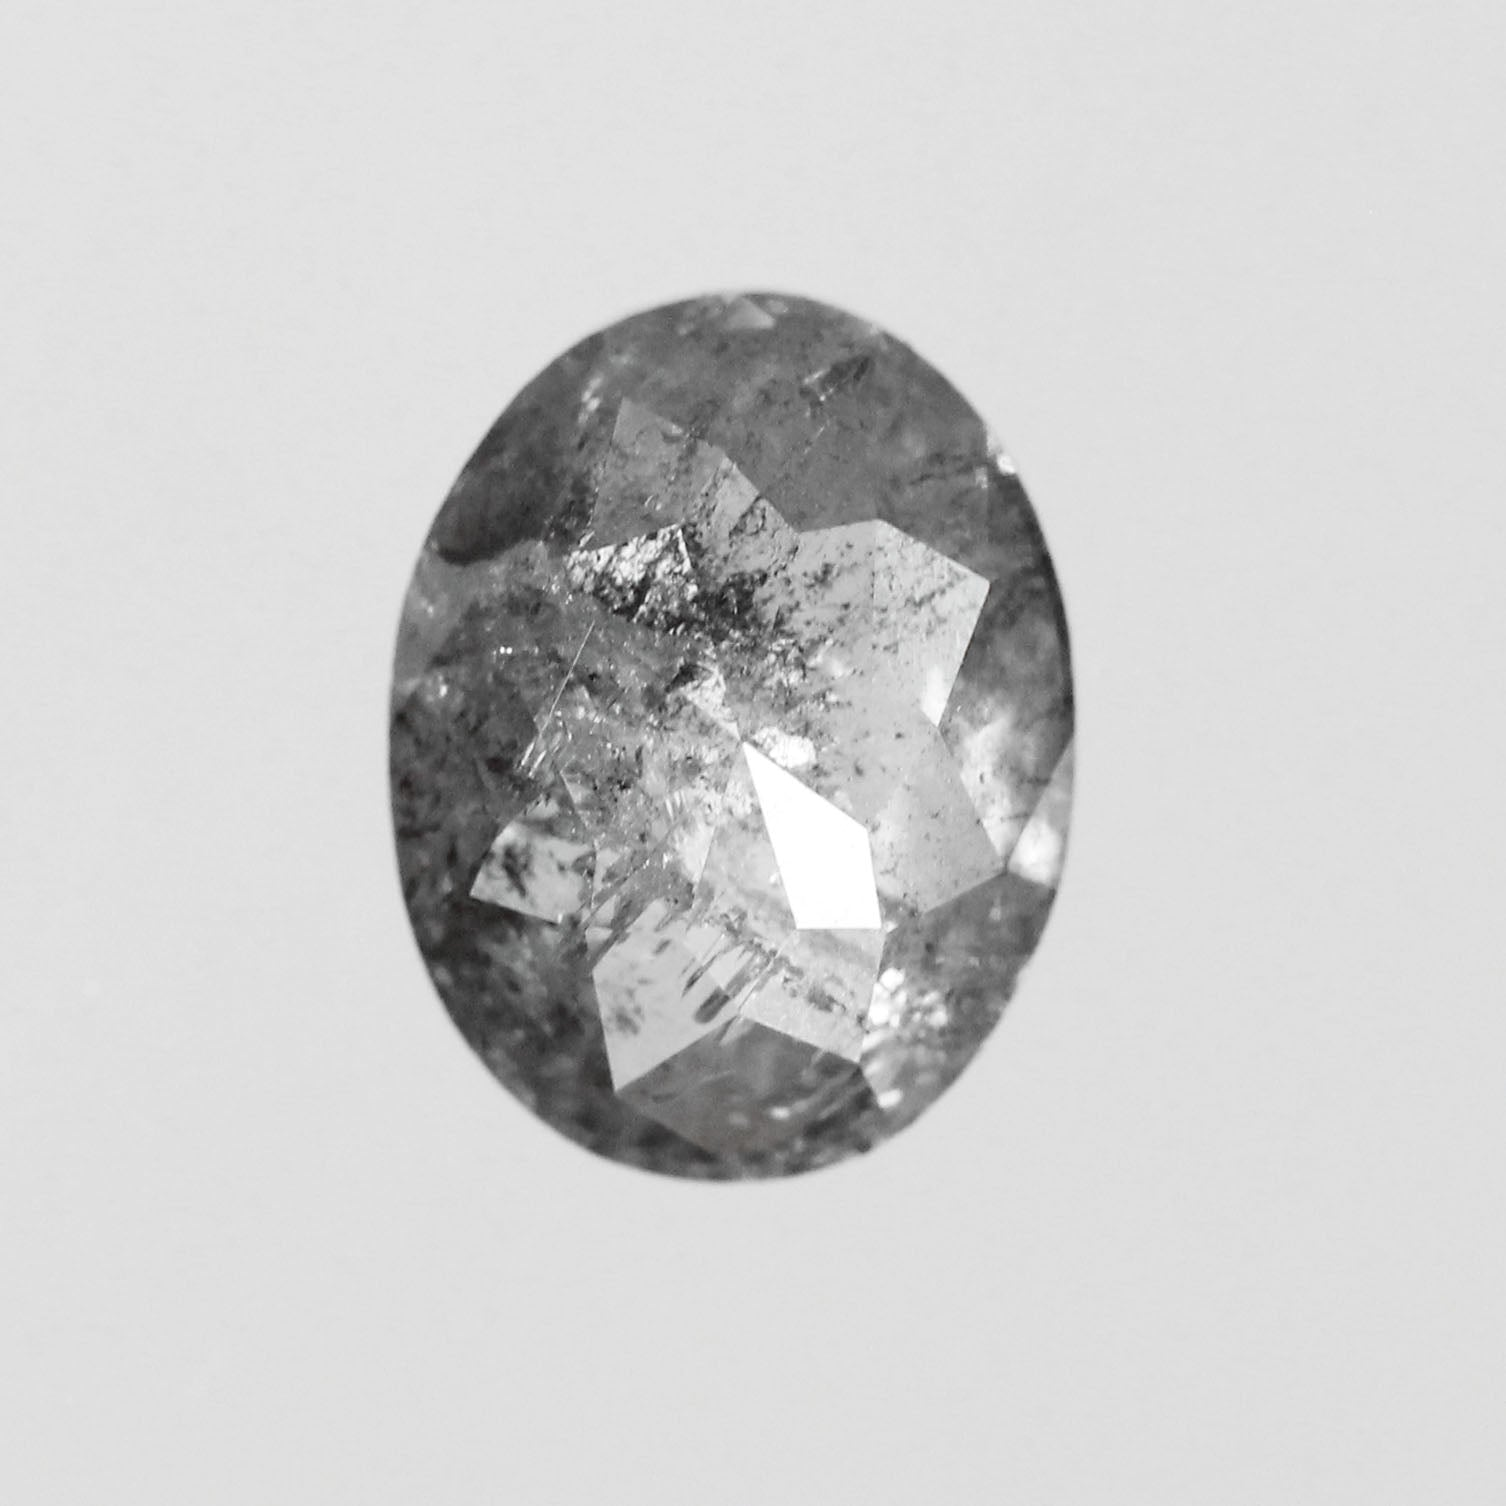 1.46 Carat Oval Celestial Diamond for Custom Work - Inventory Code ORG146 - Celestial Diamonds ® by Midwinter Co.